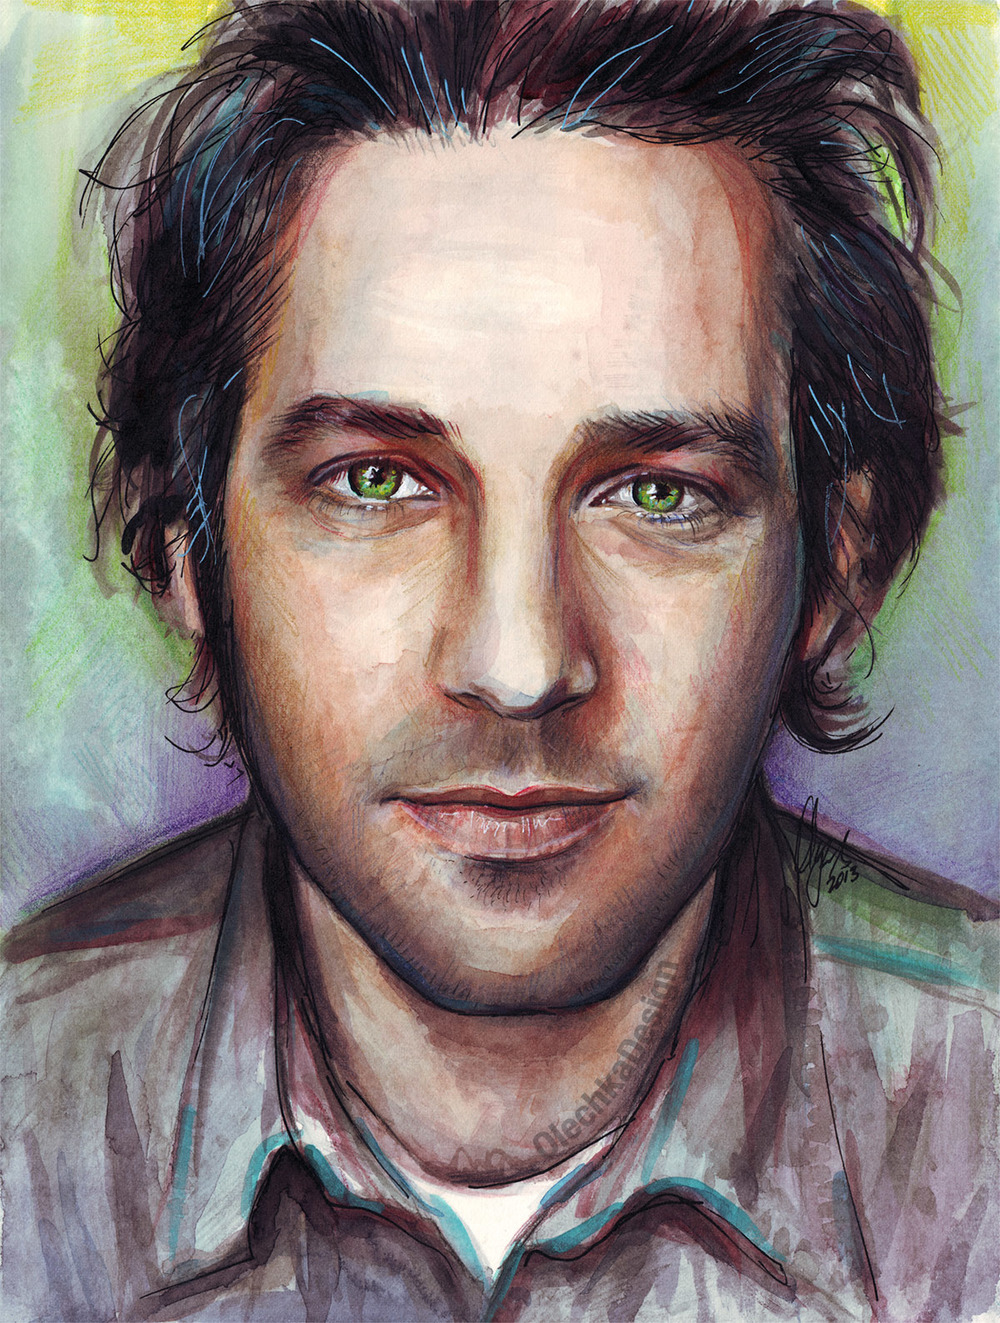 Paul_Rudd_portrait.jpg